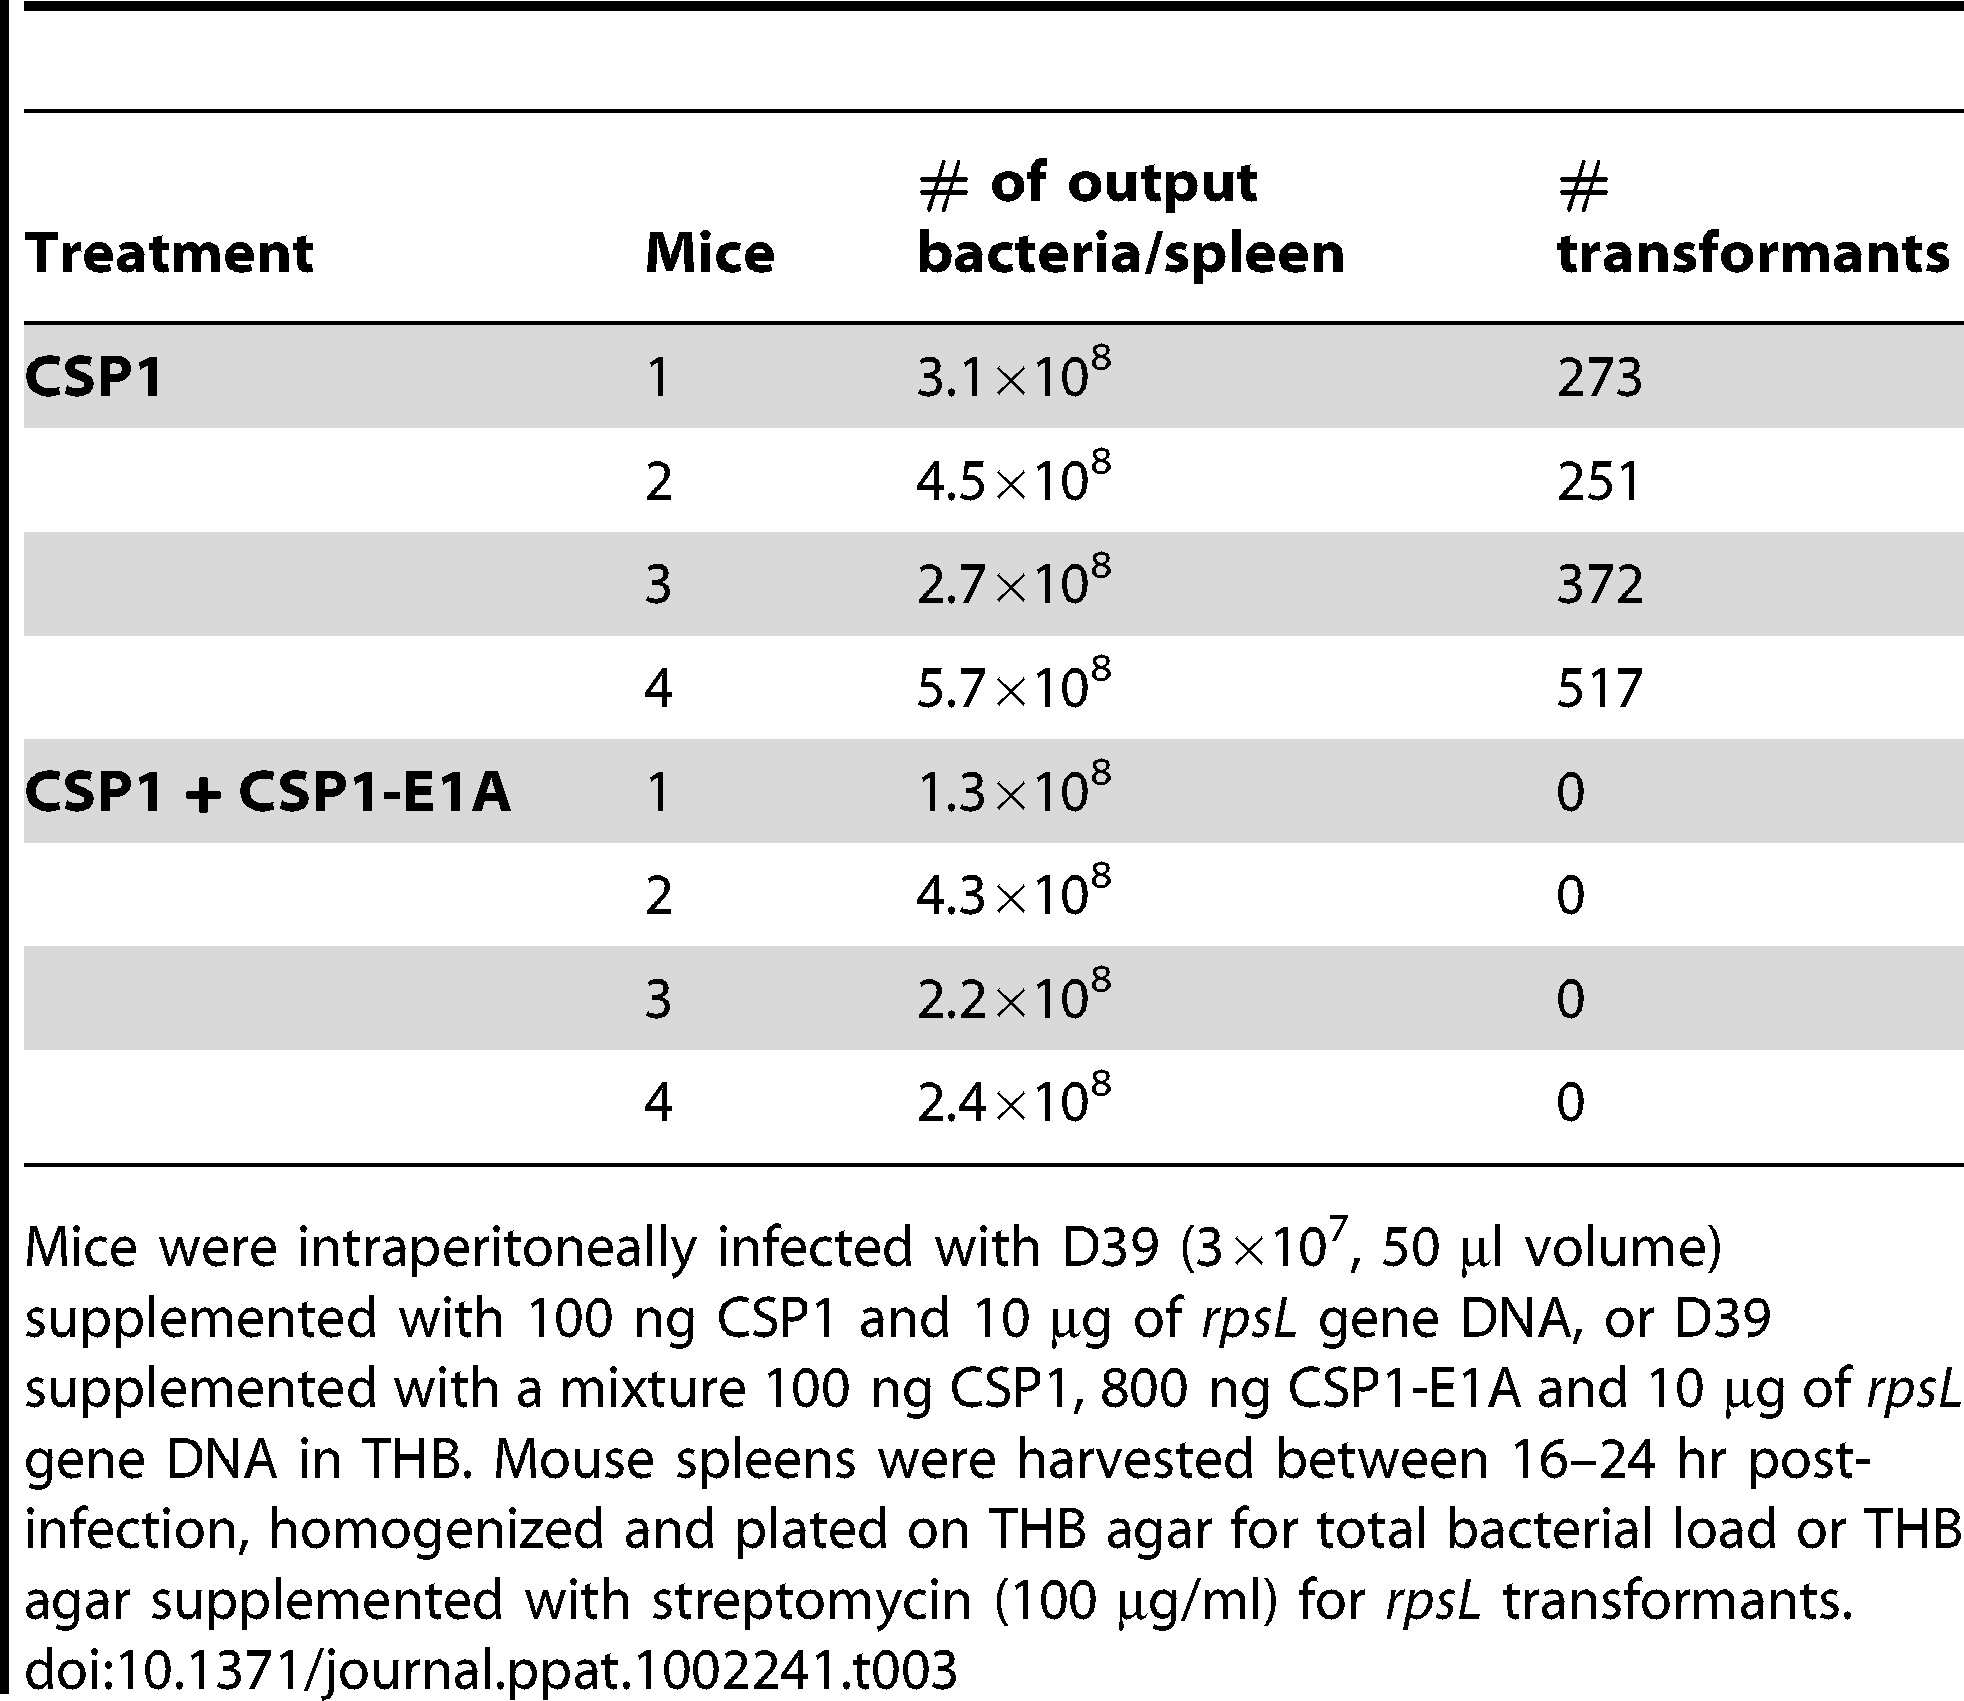 CSPP1-E1A inhibits the ability of <i>S. pneumoniae</i> to acquire the <i>rpsL</i> streptomycin resistance gene in mouse peritoneal cavity.